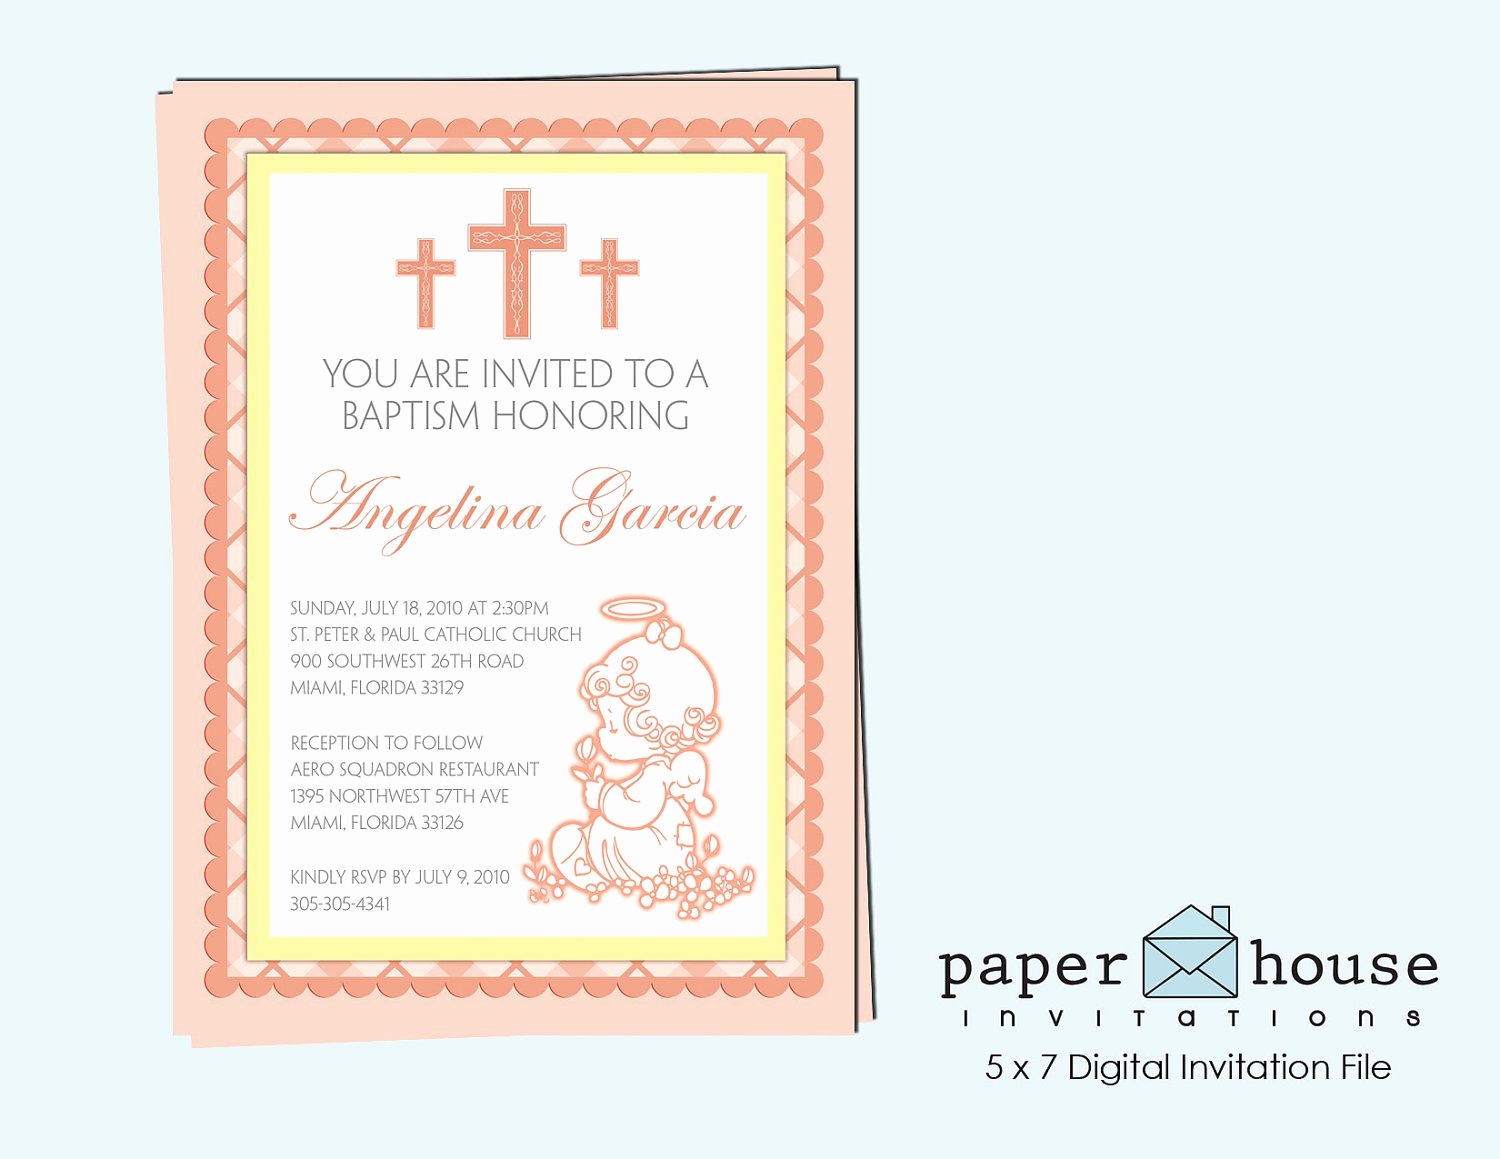 Precious Moments Wedding Invitation Lovely Precious Moments Baptism Invitations